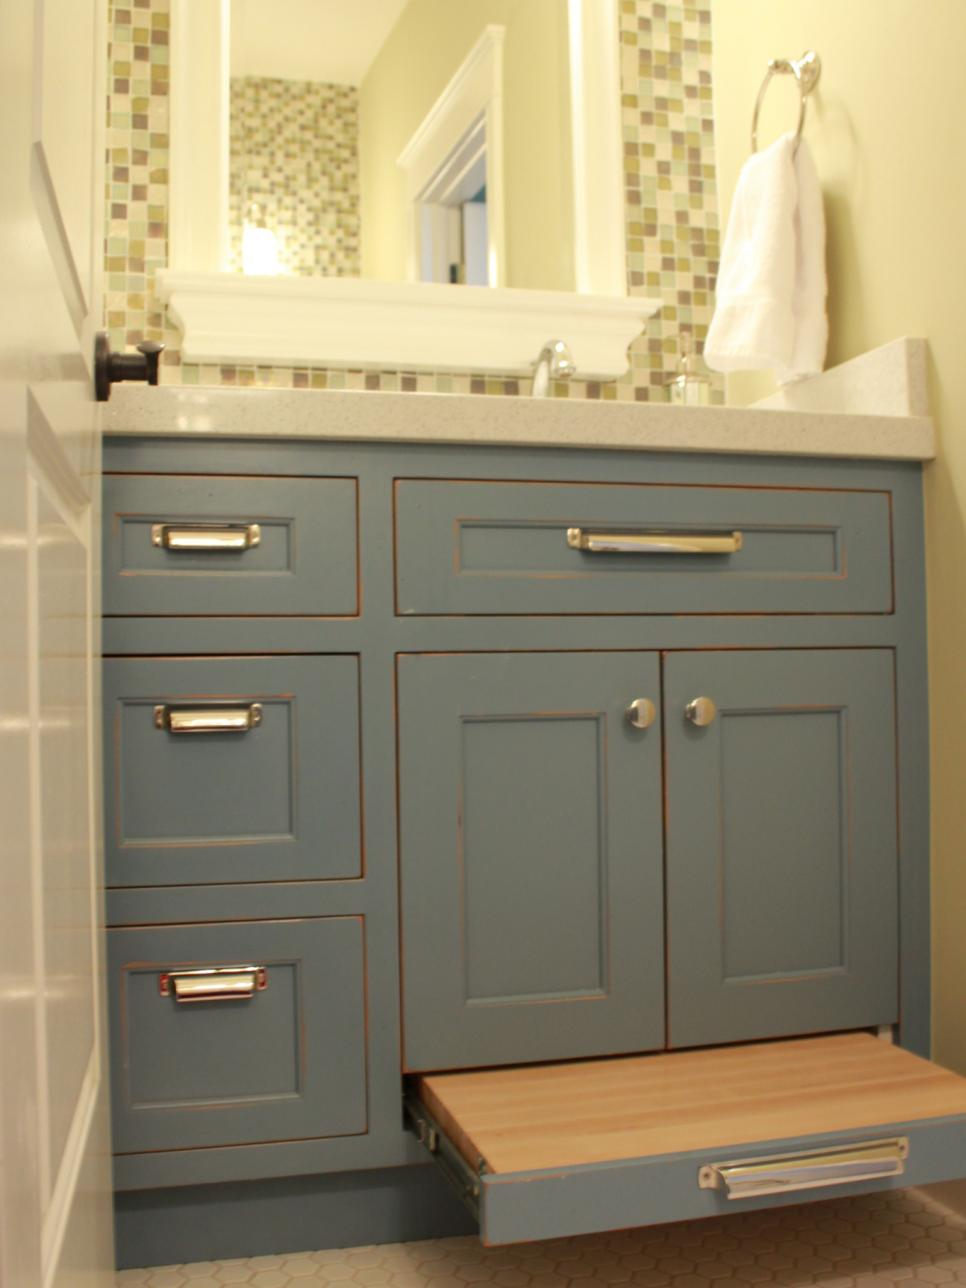 Modular Bathroom Cabinets With Drawers Regard To Storage Design Vanity with regard to New Bathroom Vanity Storage